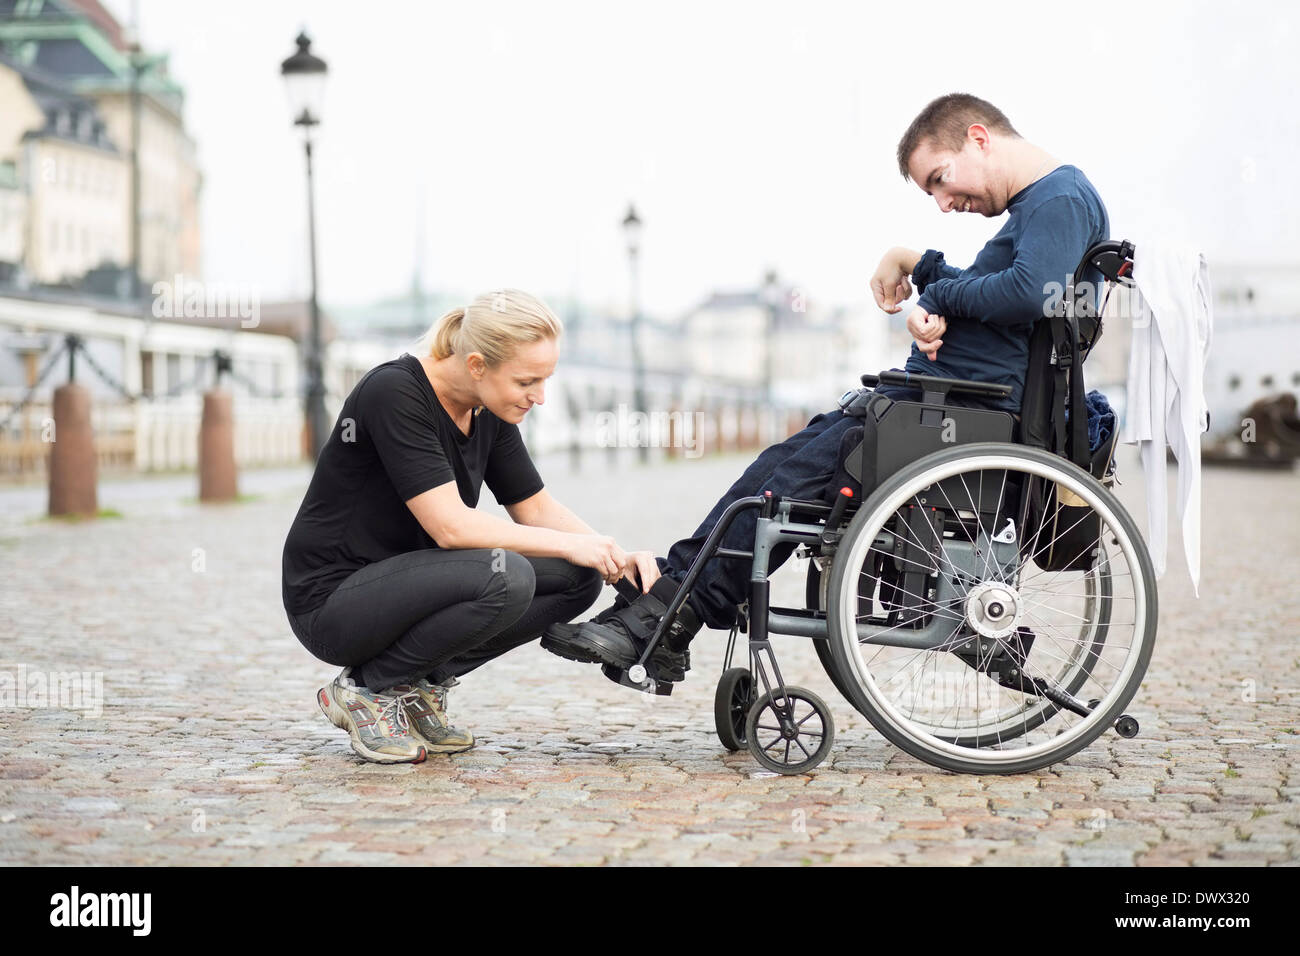 Female caretaker putting on disabled man's shoes on street - Stock Image